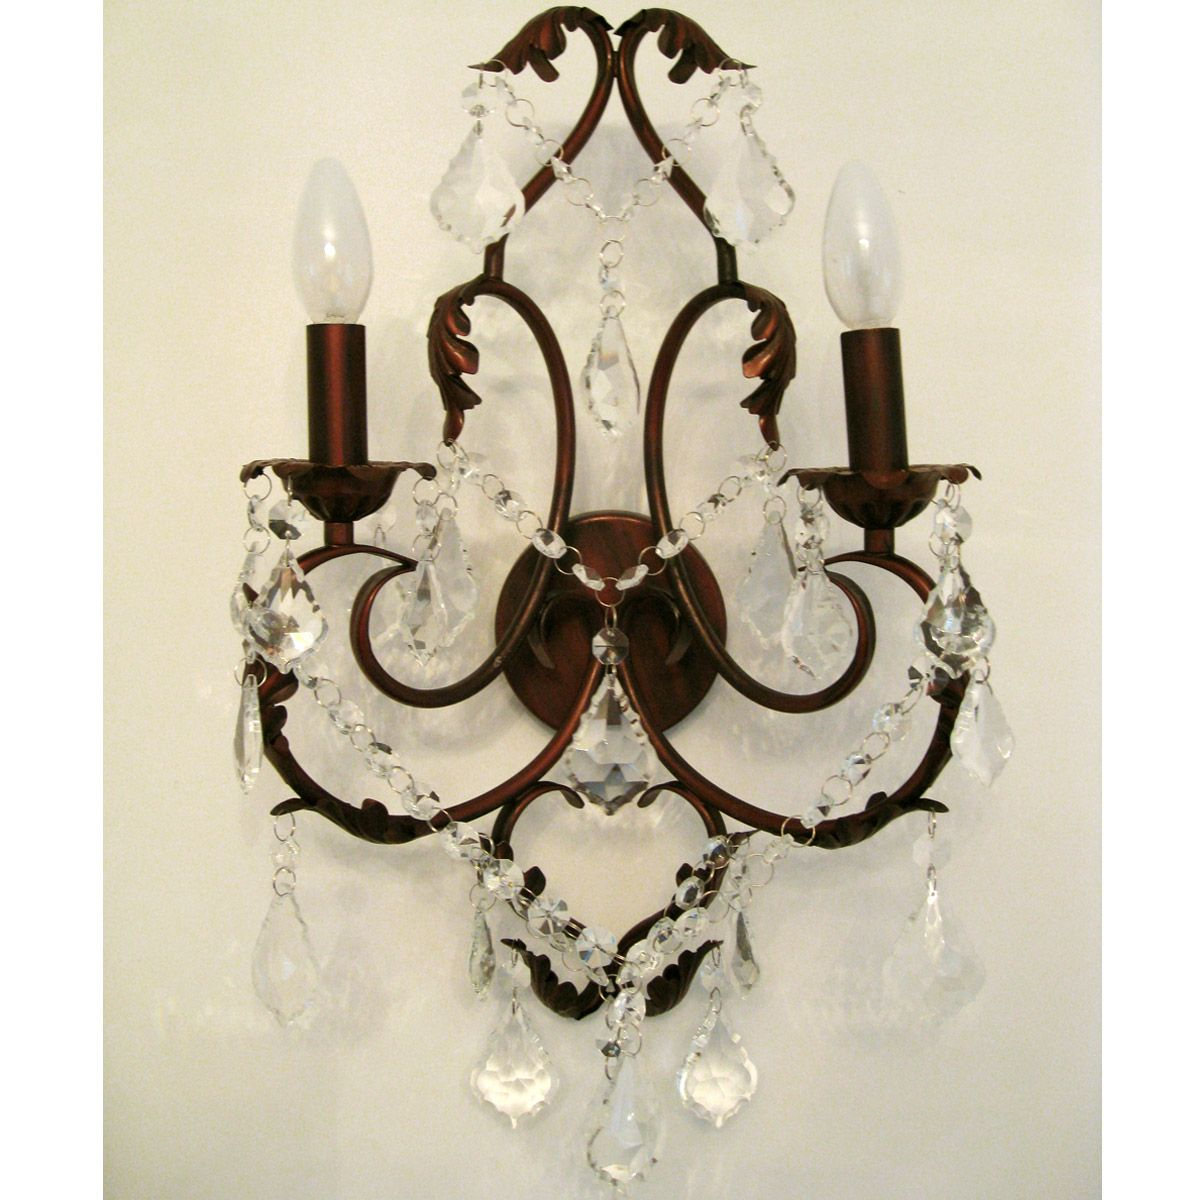 Romantica Bronze Wall Sconce Wall Sconces / Wall Lights